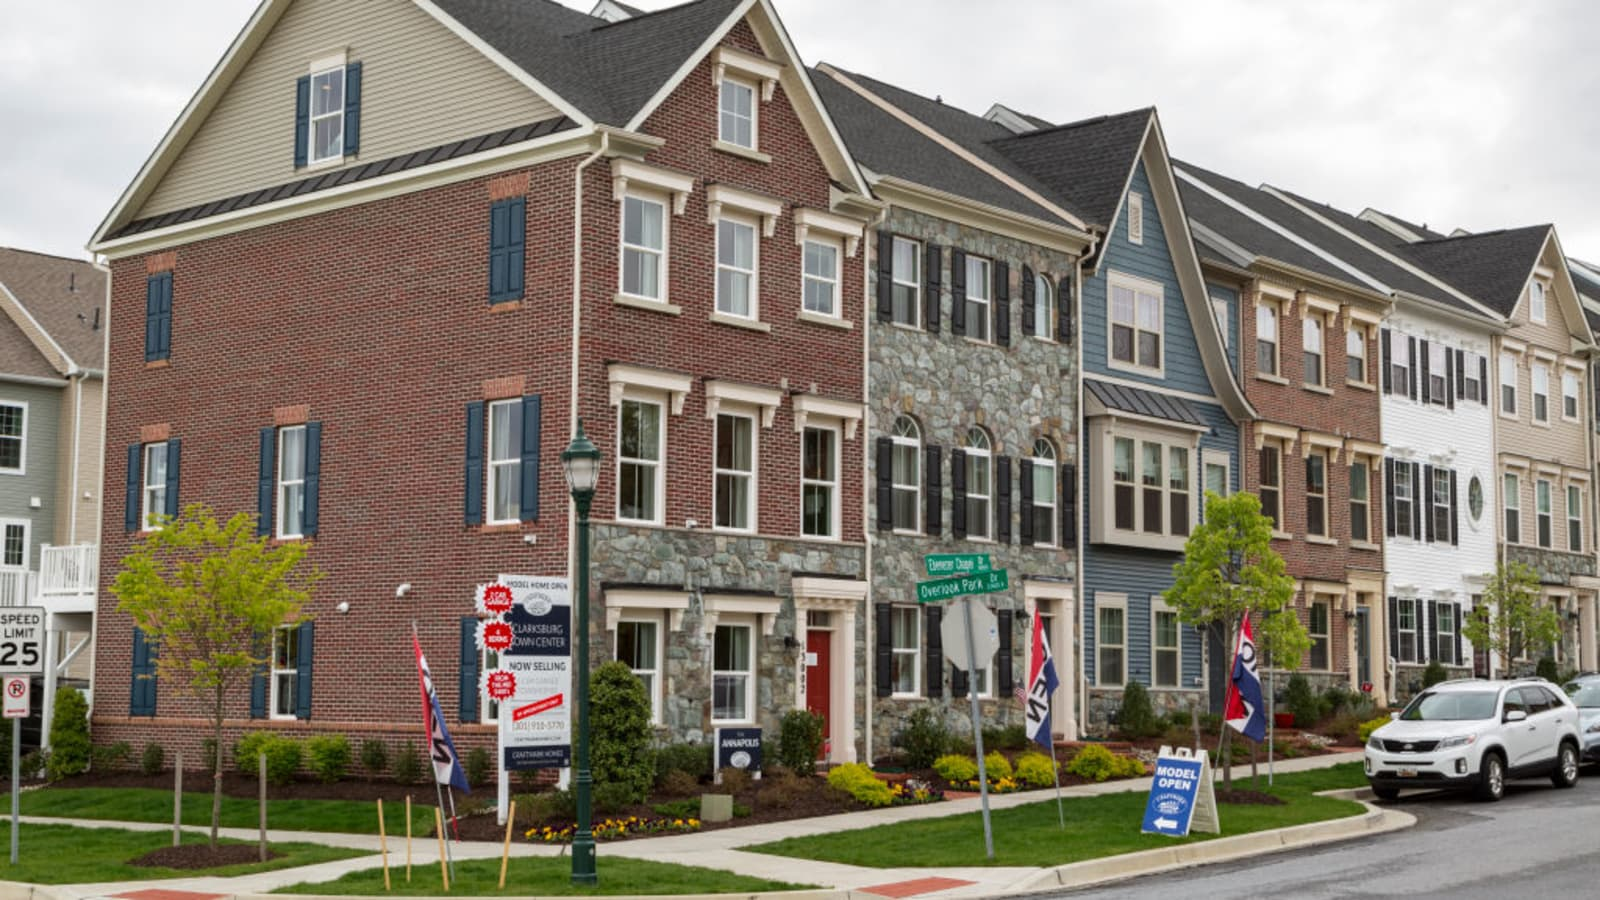 New Home Sales Rose Slightly In April As Prices Fall